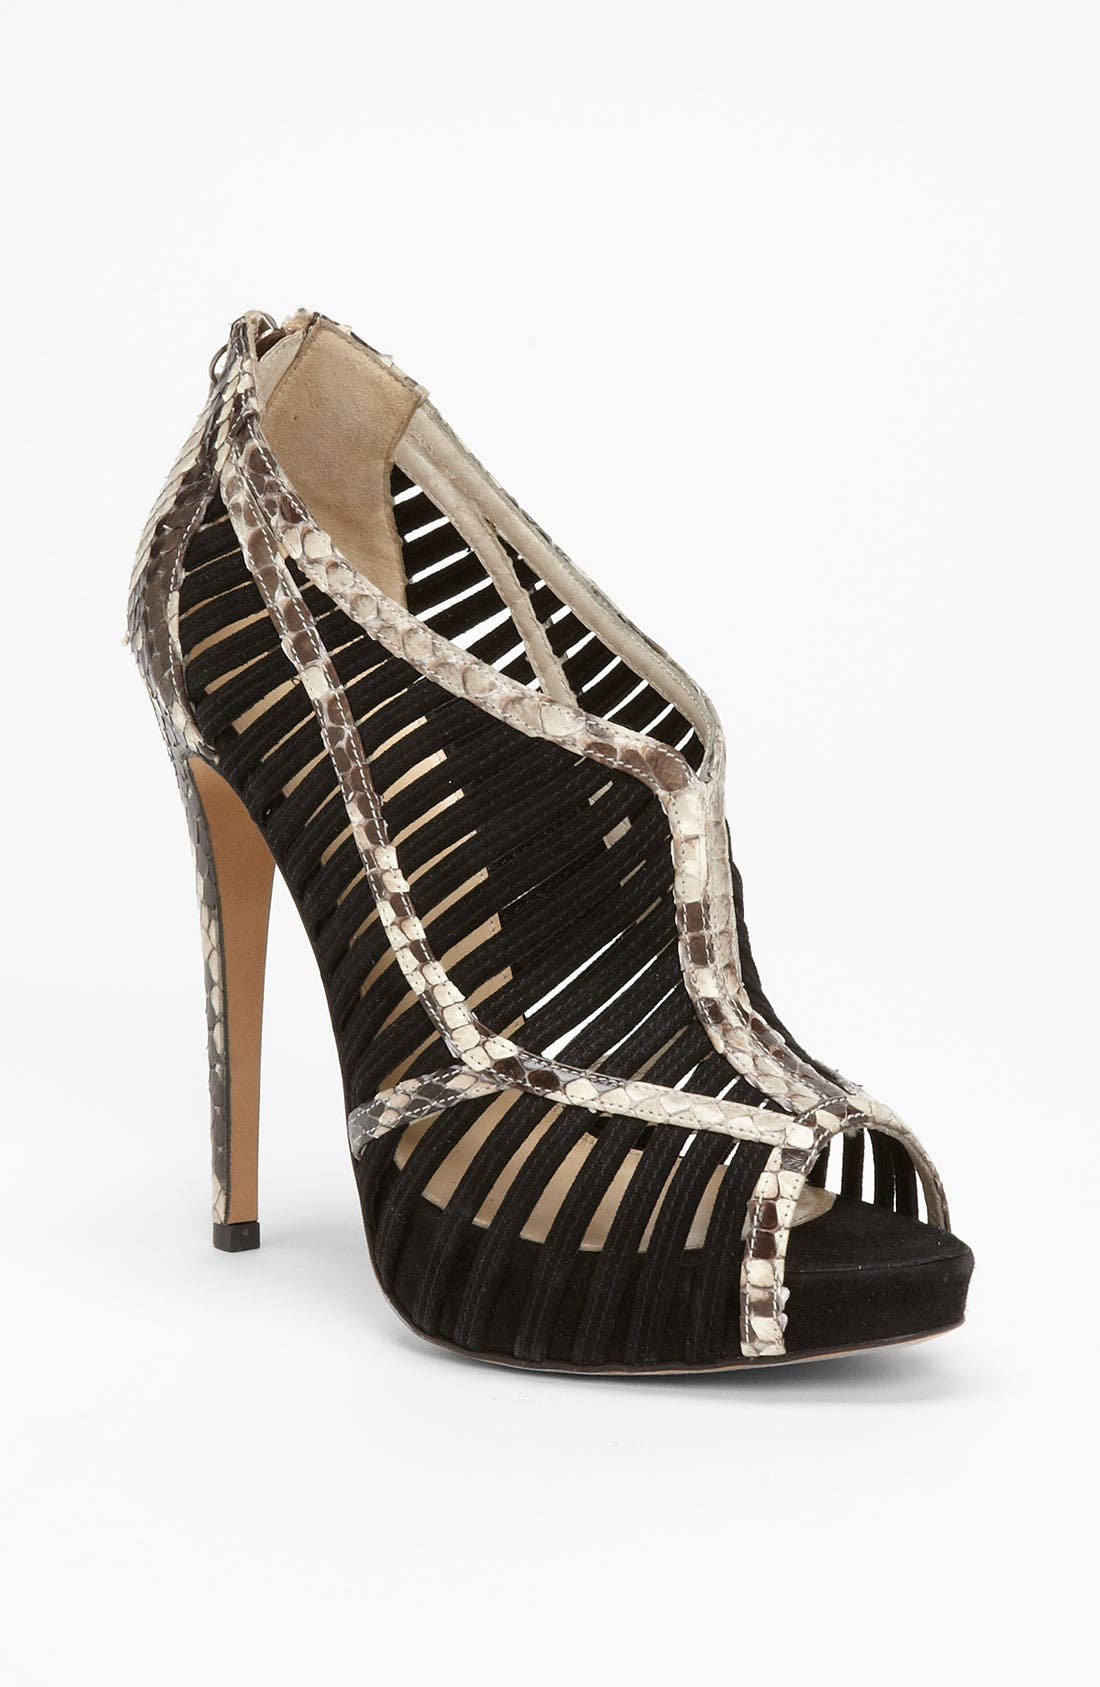 Main Image - Alexandre Birman Genuine Python Caged Sandal